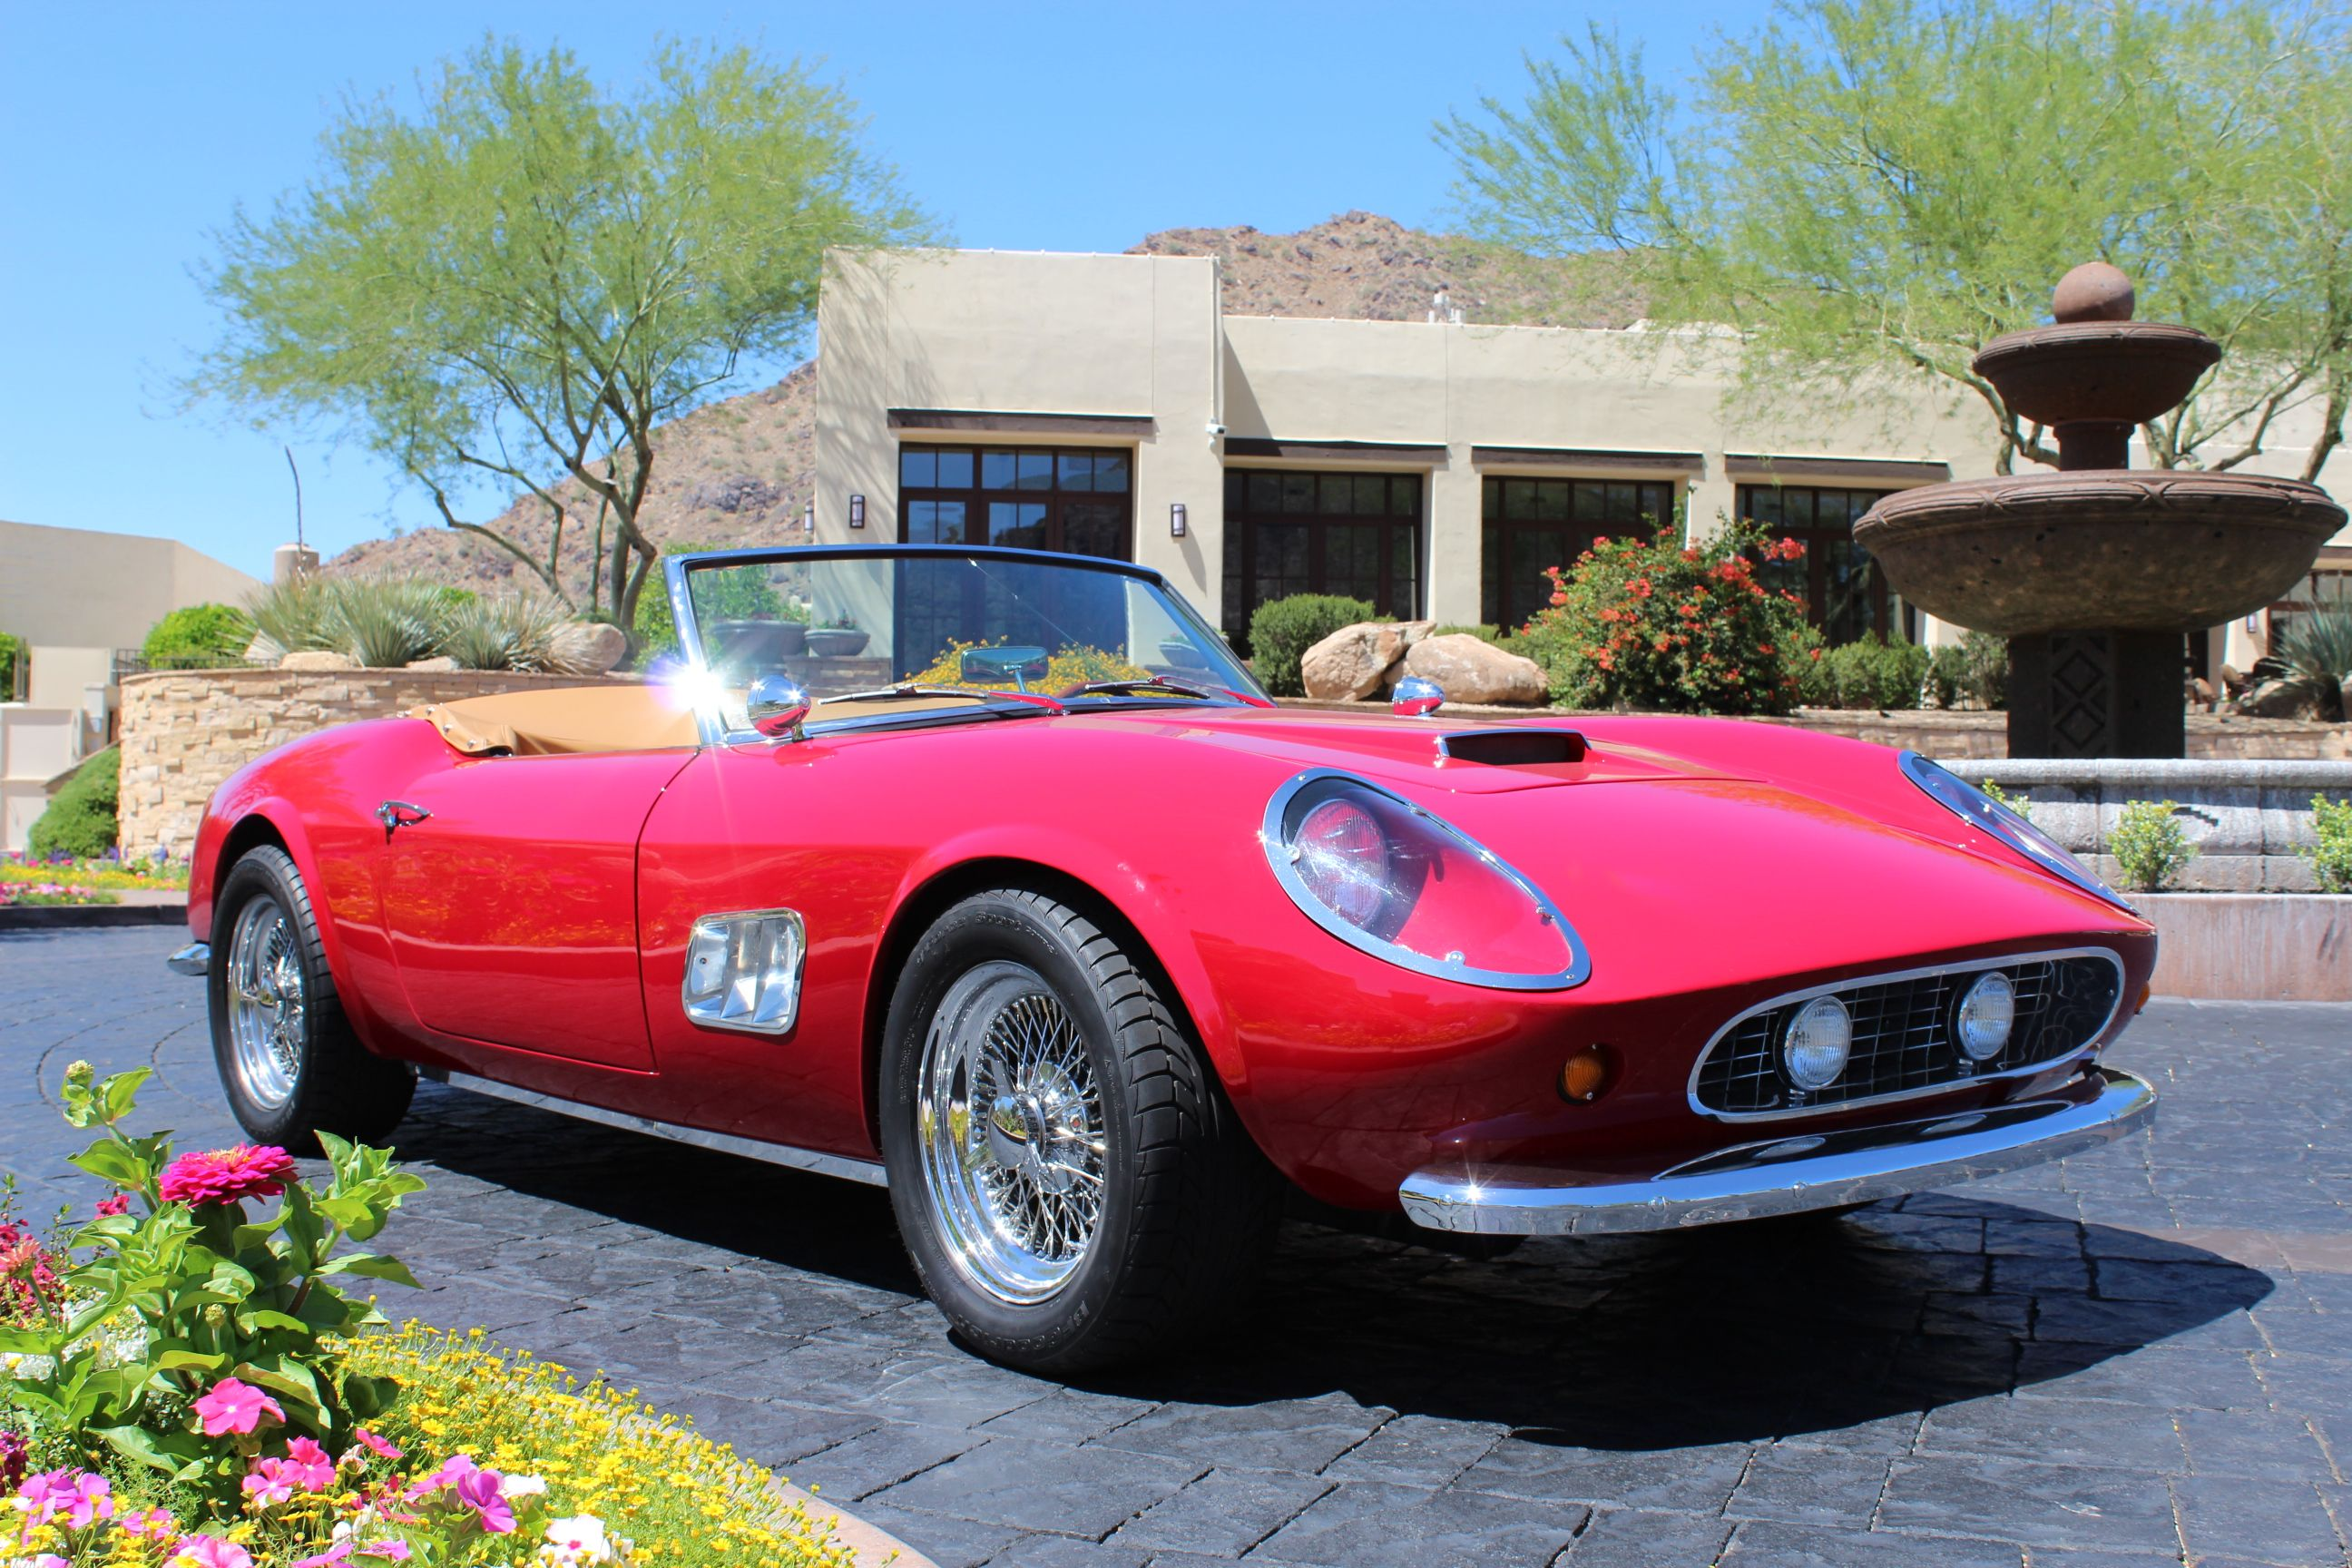 One of the Ferraris From Ferris Bueller's Day Off Just Sold for $396,000